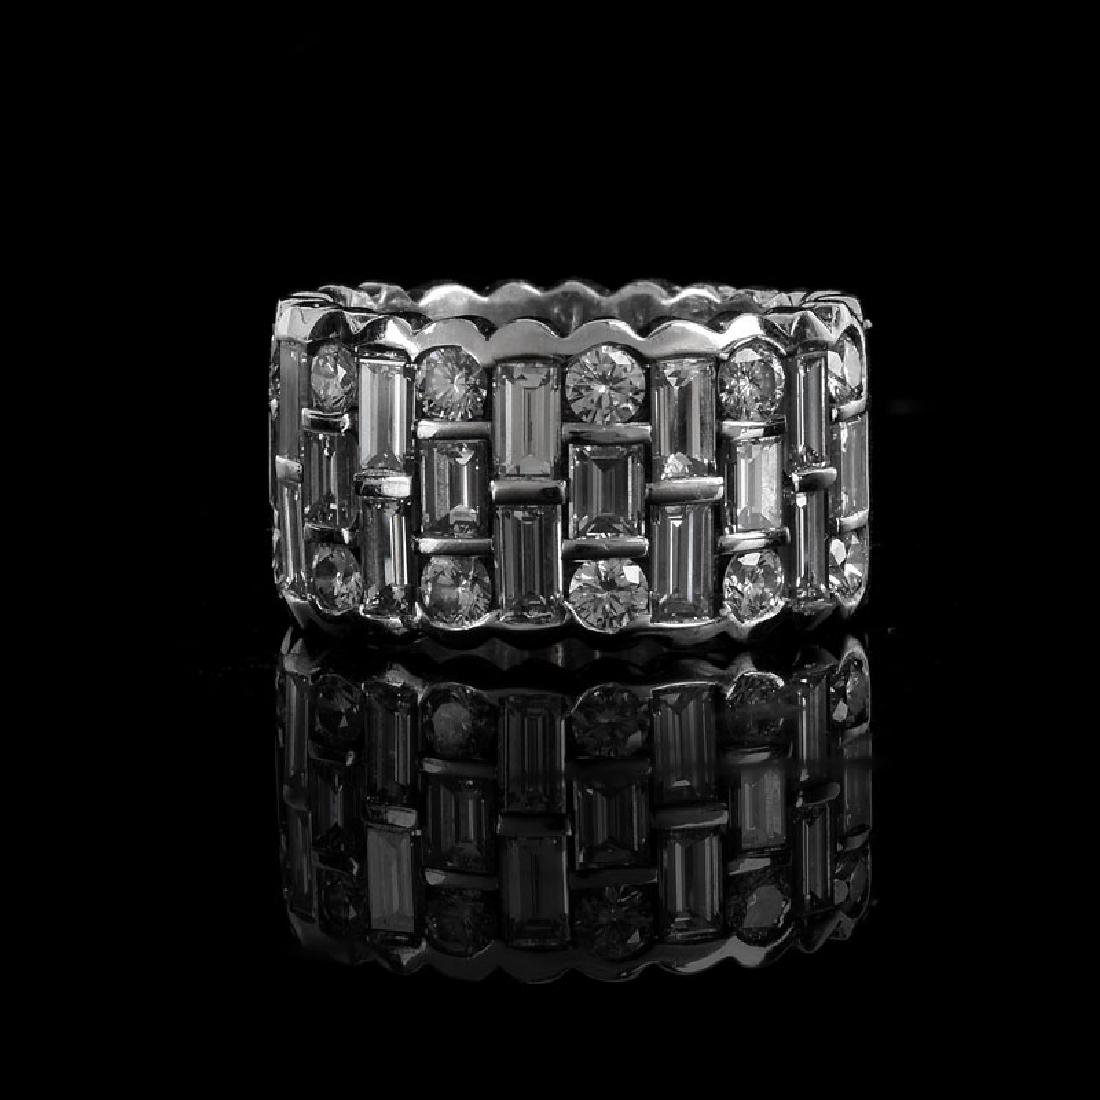 Approx. 4.0 Carat TW Baguette and Round Brilliant Cut